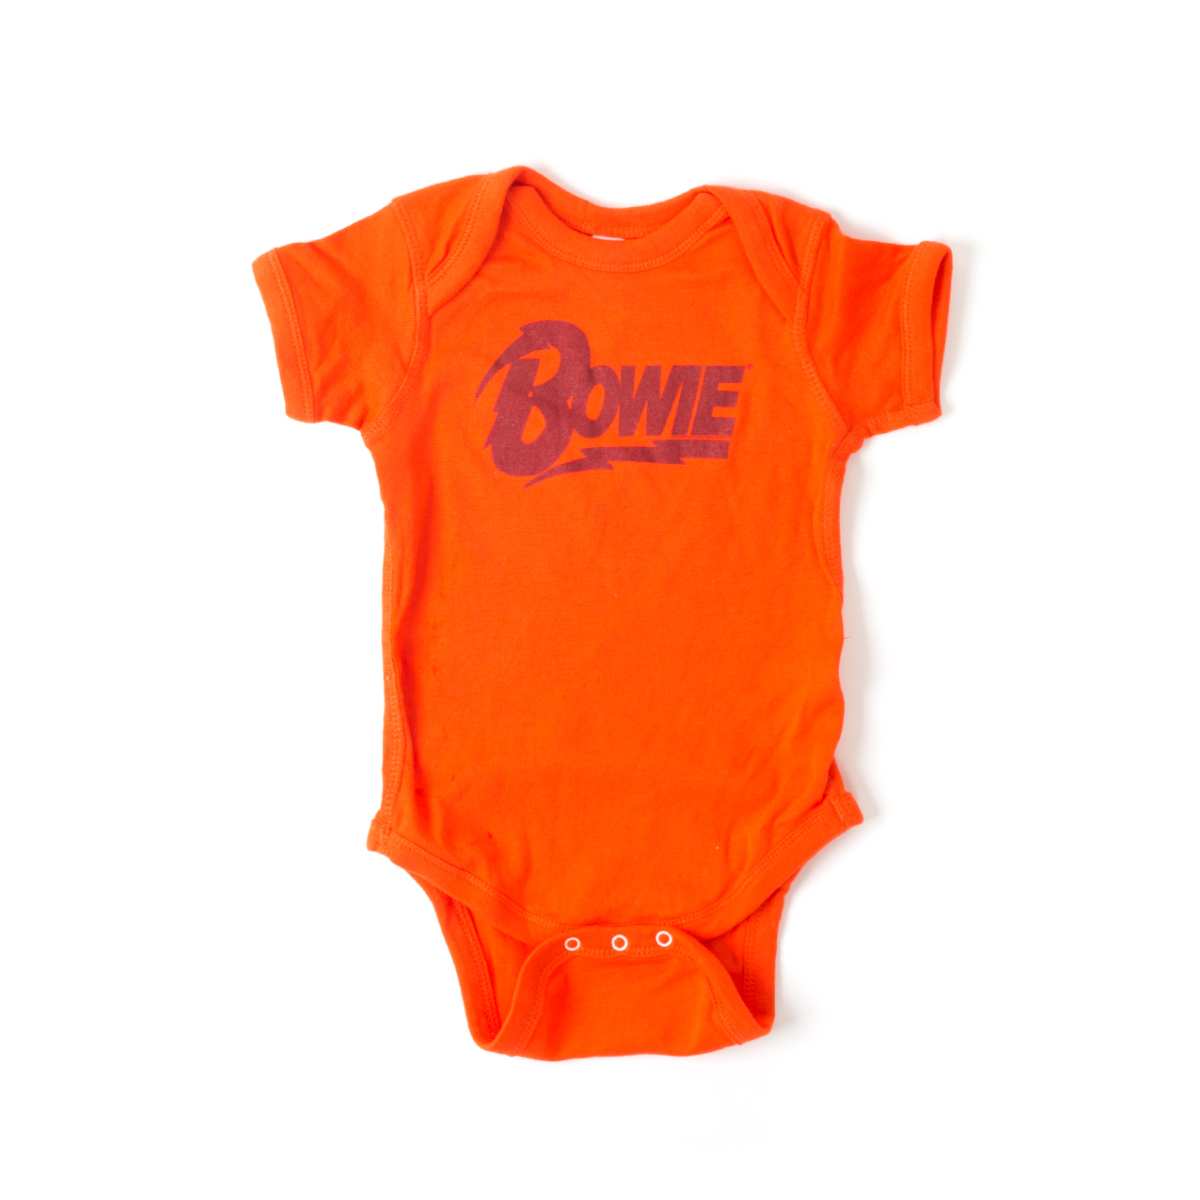 David Bowie Black Bowie Text Orange Onesie